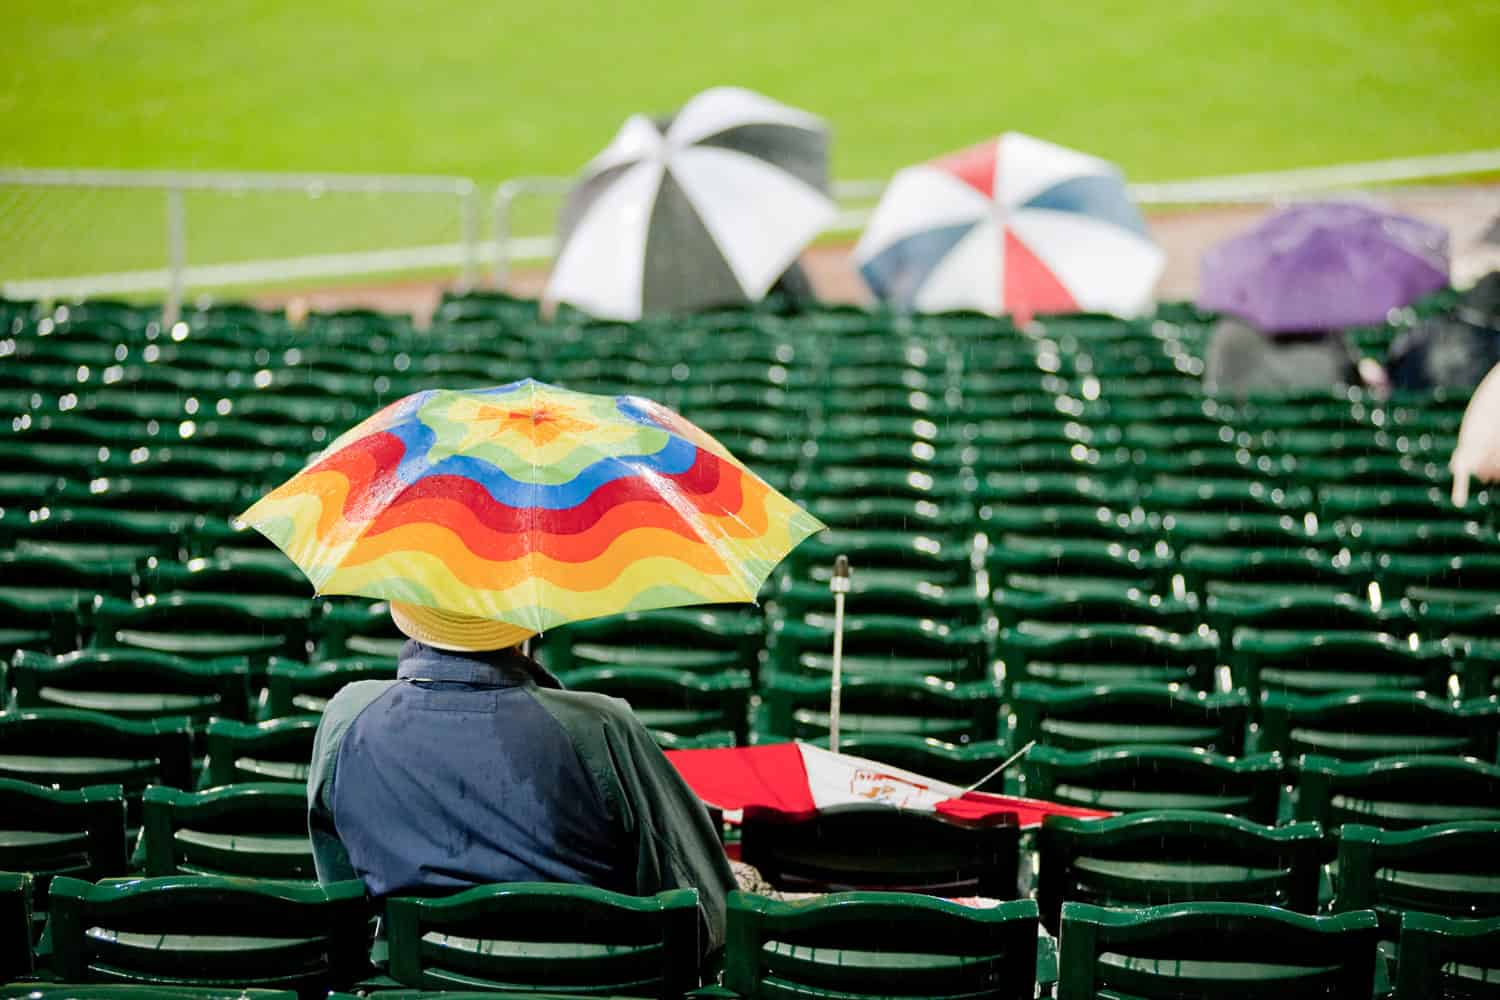 Baseball spectators using umbrellas while watching the game